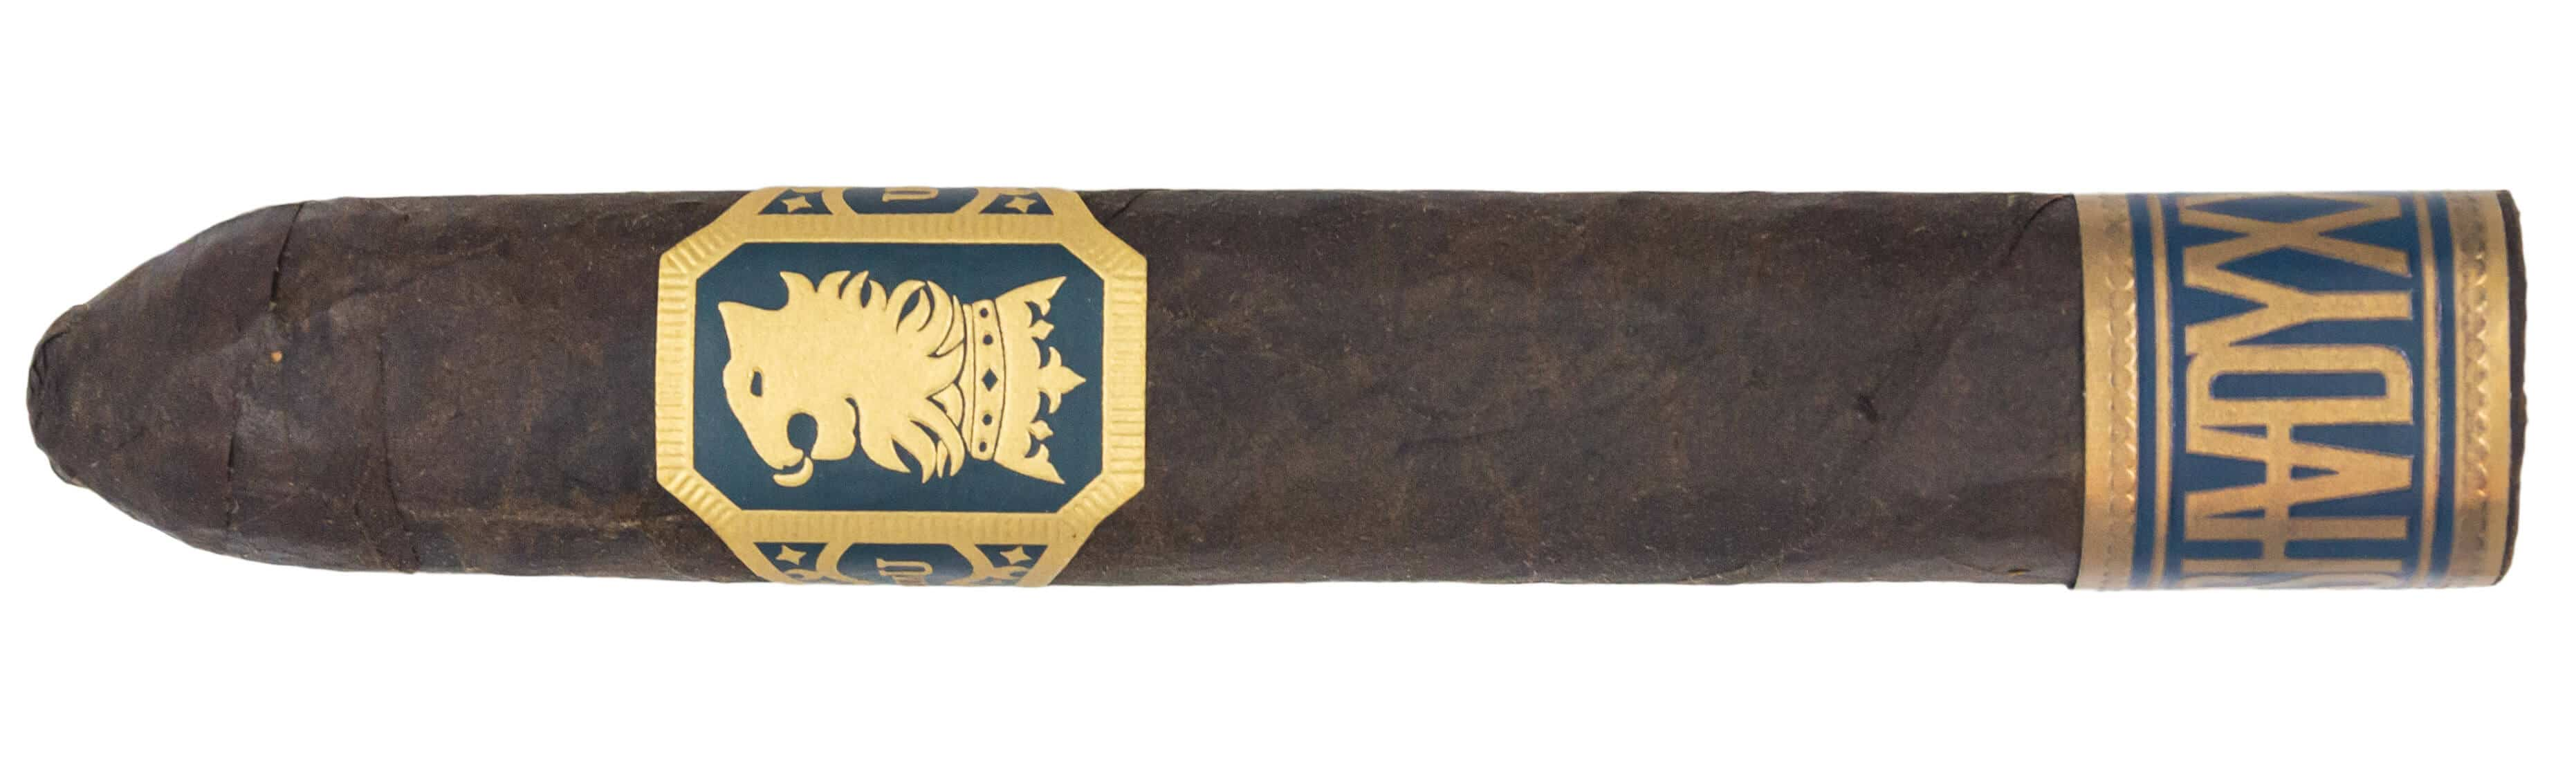 Blind Cigar Review: Drew Estate | Undercrown ShadyXX 2020